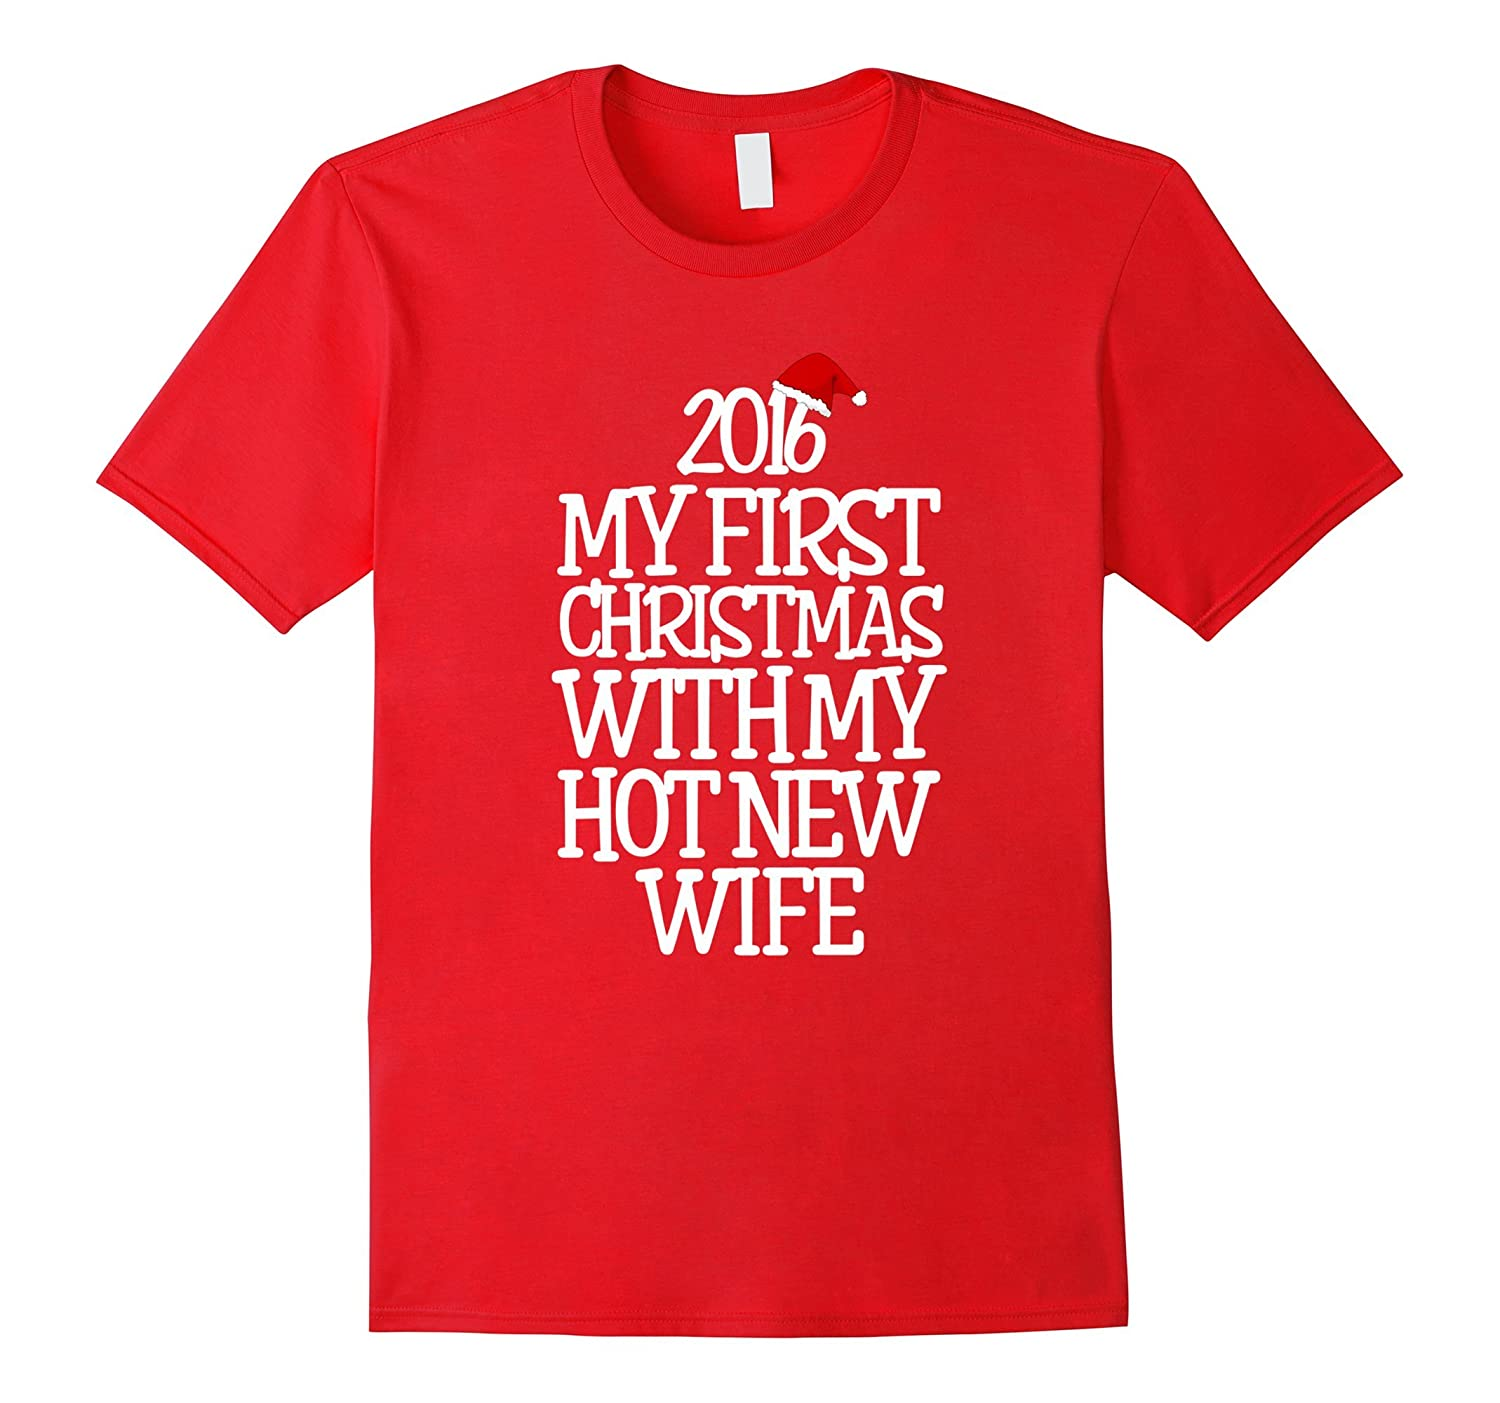 2016 My First Christmas With My Hot New Wife Funny Shirt-RT